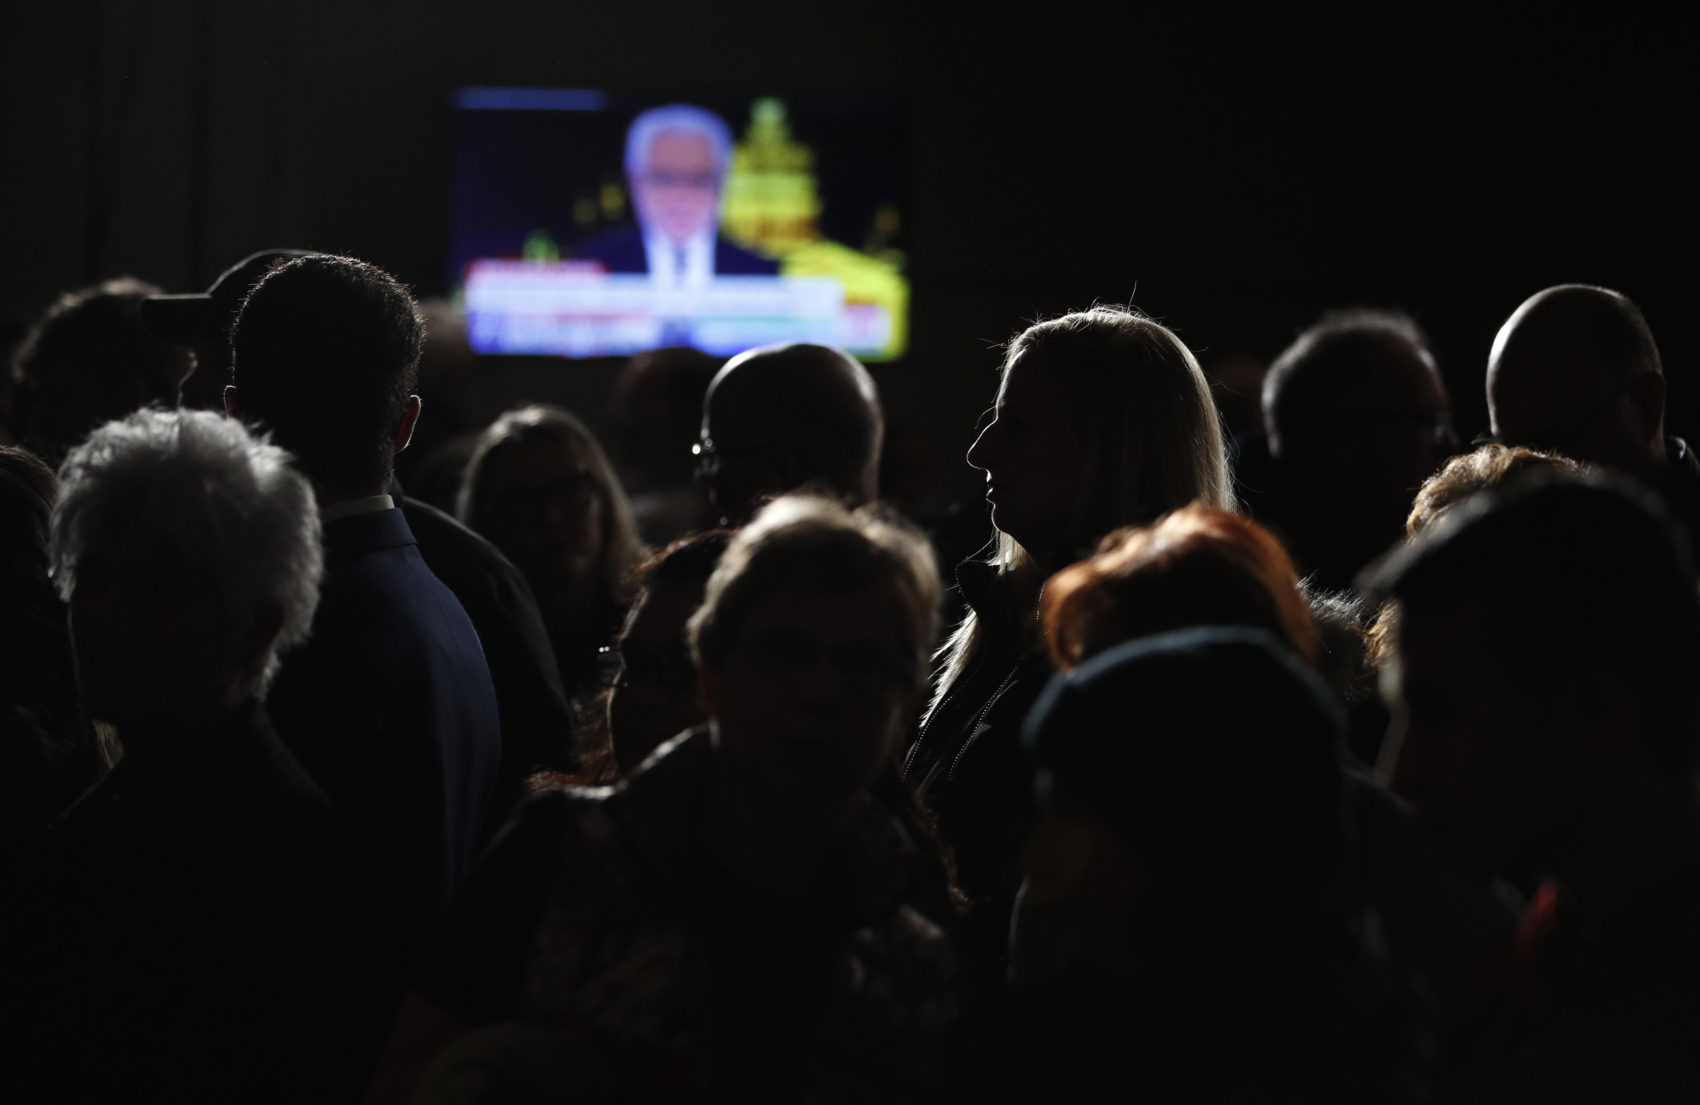 People wait for results at a caucus night campaign rally for democratic presidential candidate former Vice President Joe Biden on Monday in Des Moines, Iowa. (John Locher/AP)